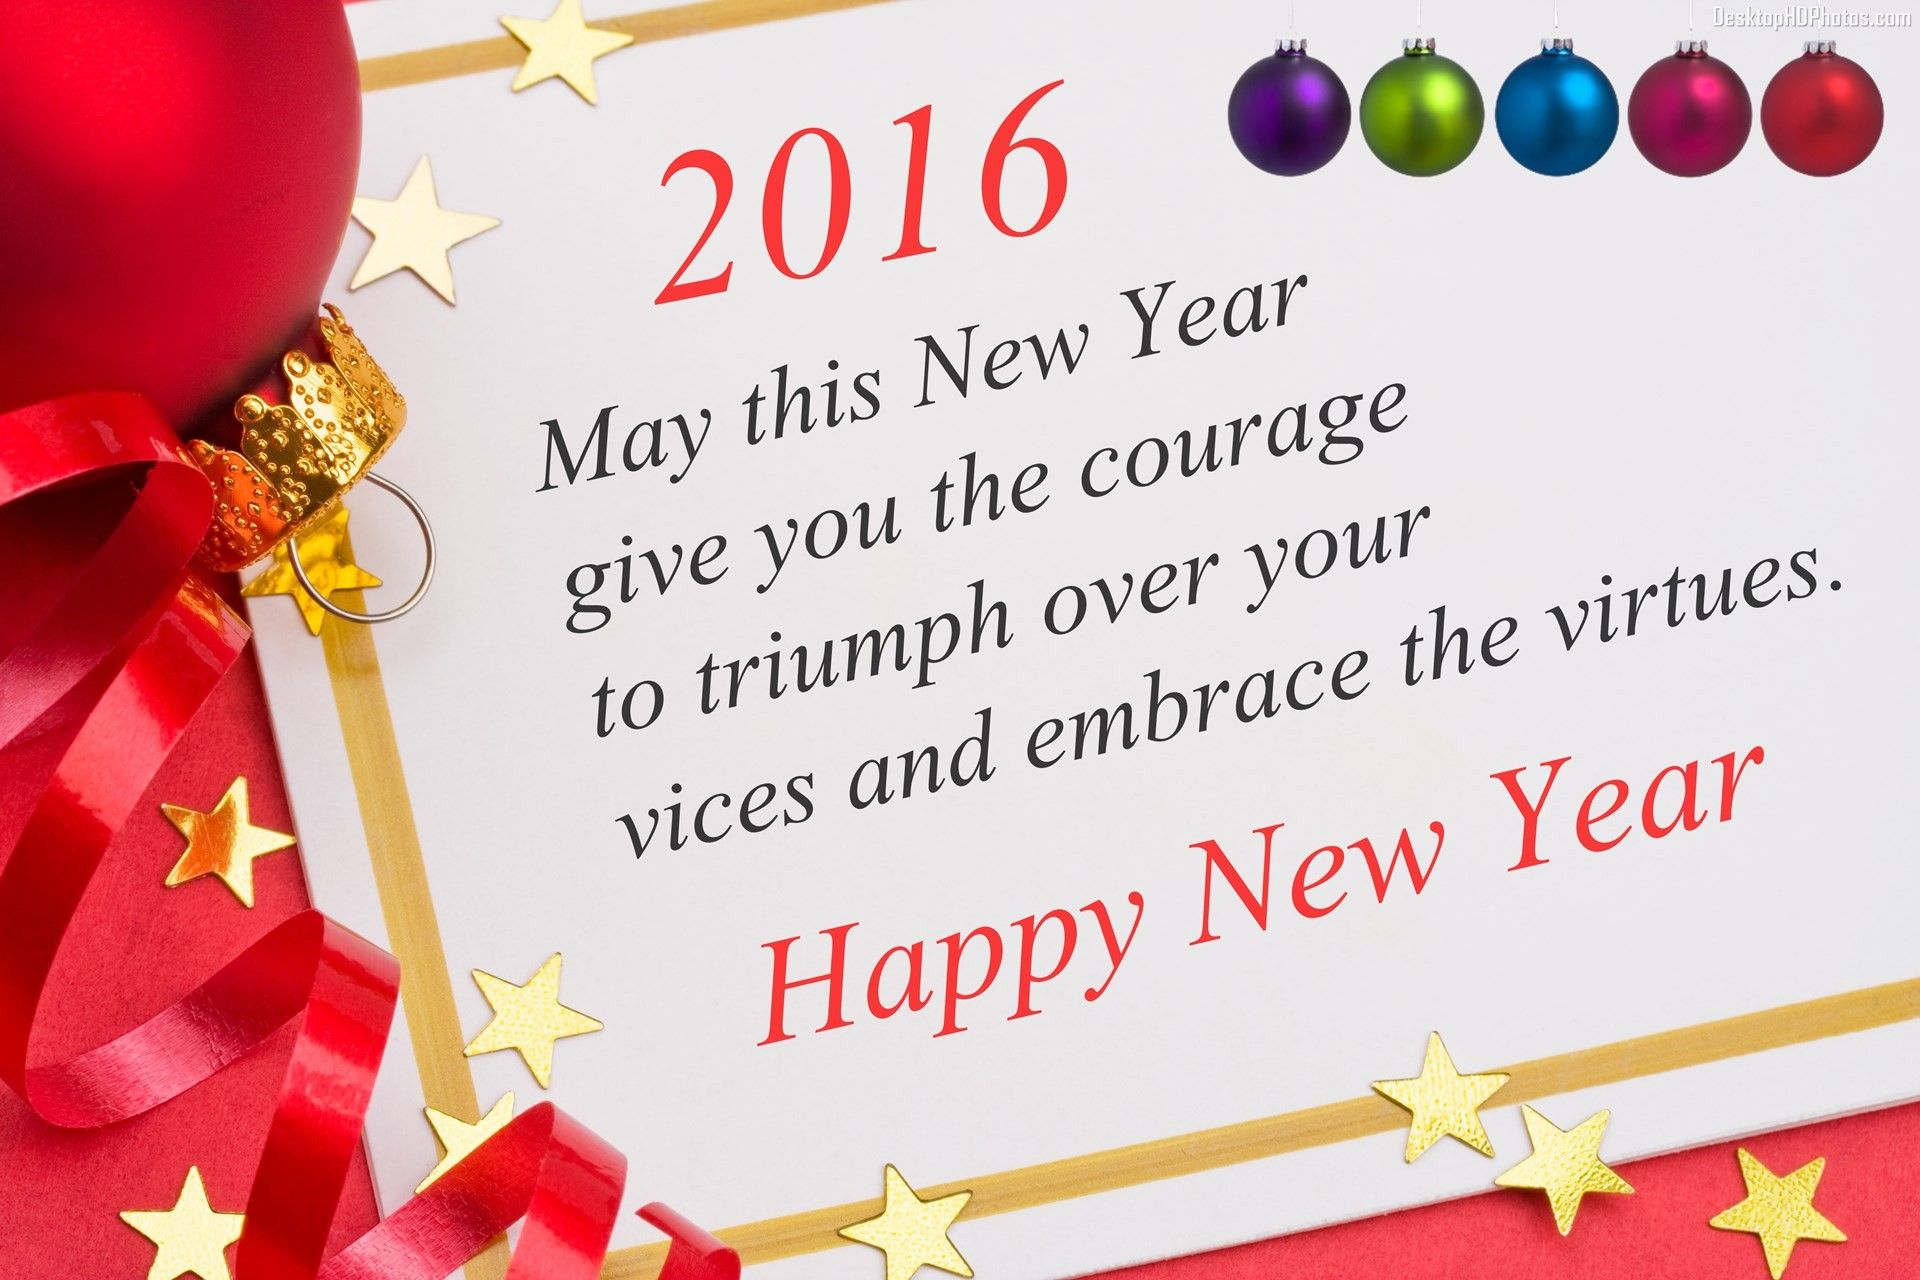 Happy New Year 2016 Wishes From the Heart of Lagom Retail Store